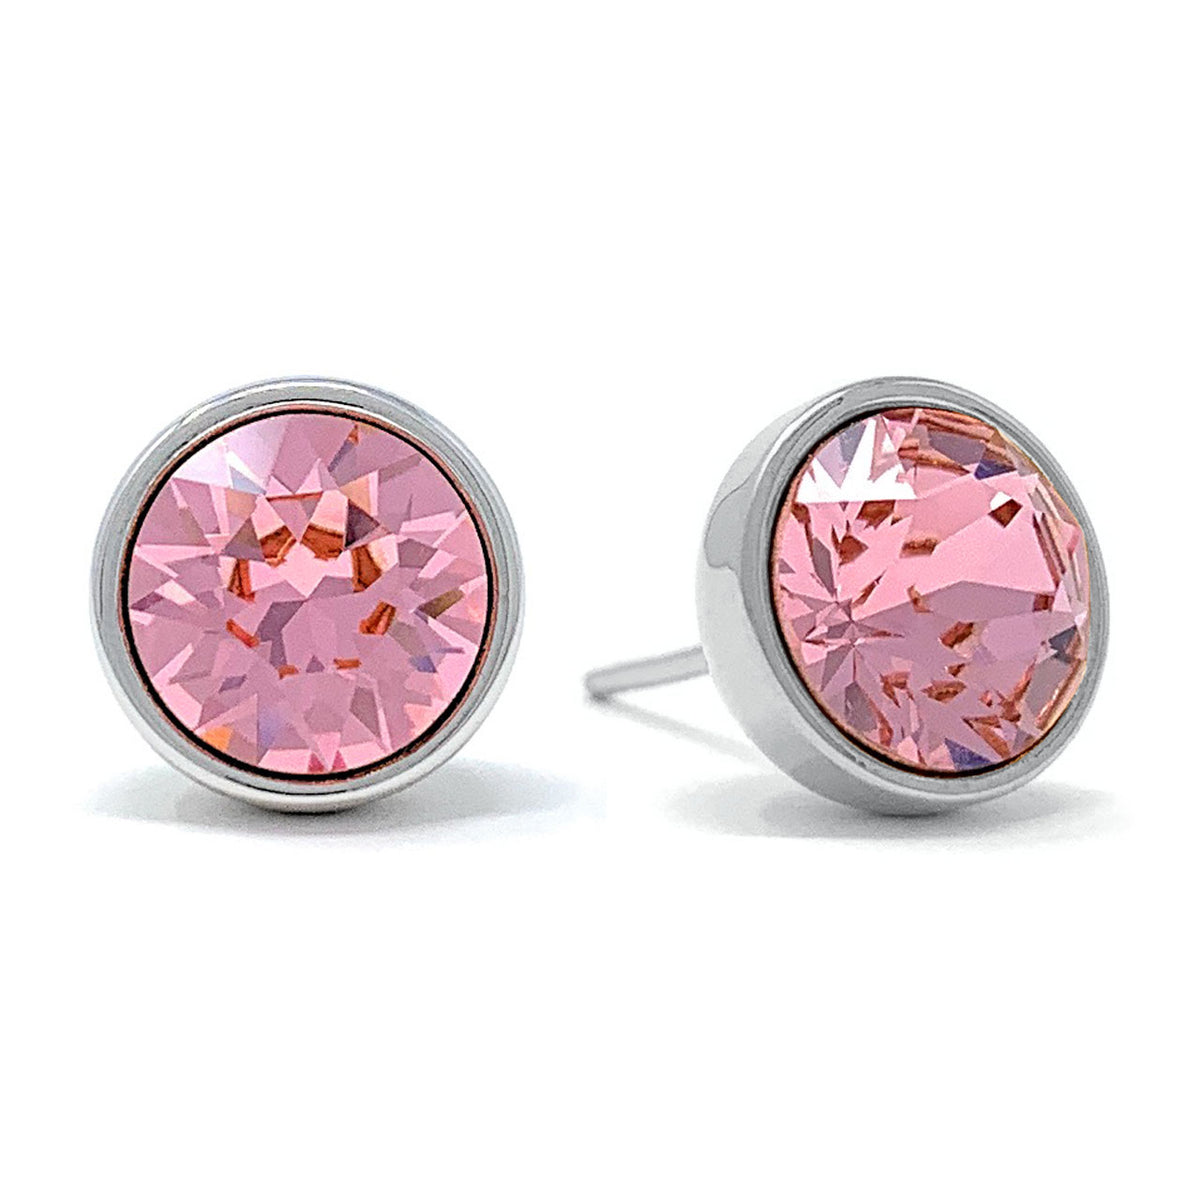 Harley Stud Earrings with Pink Light Rose Round Crystals from Swarovski Silver Toned Rhodium Plated - Ed Heart